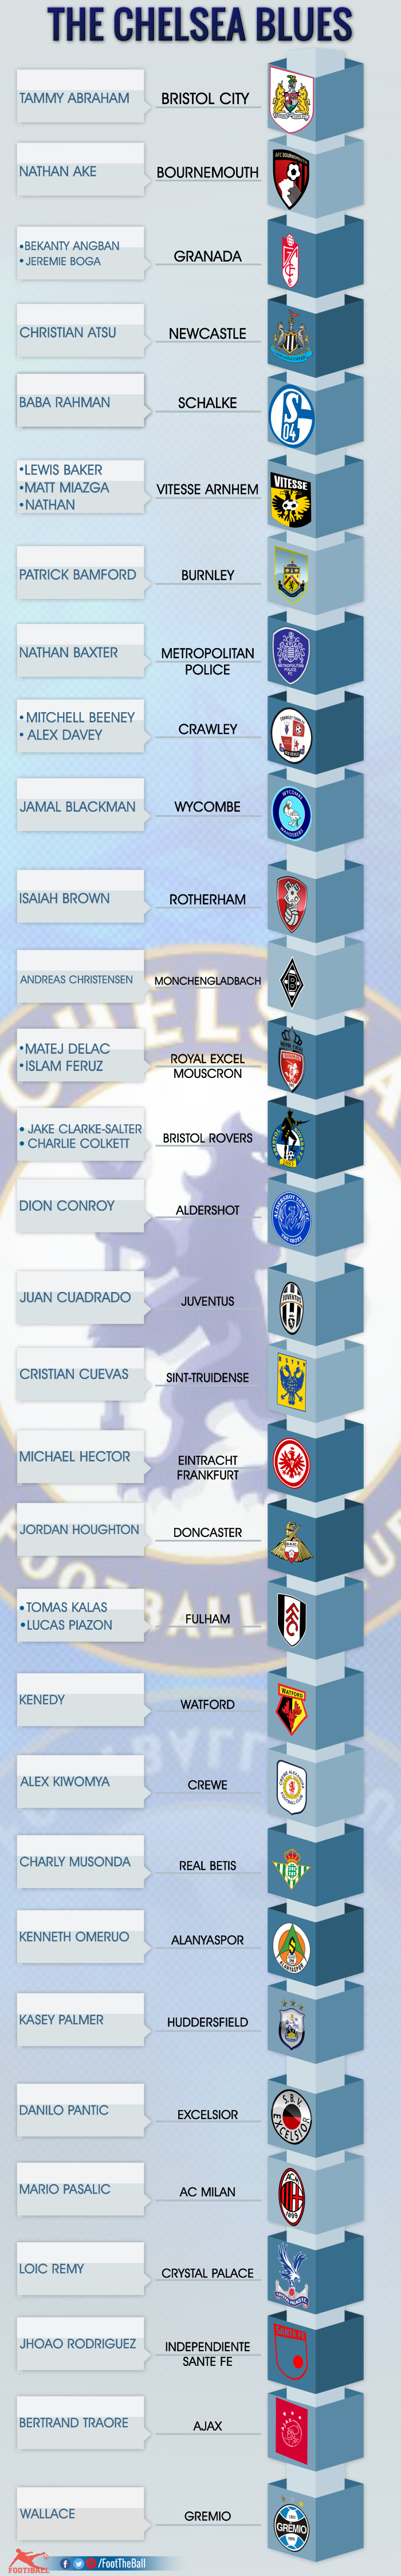 players on loan from Chelsea